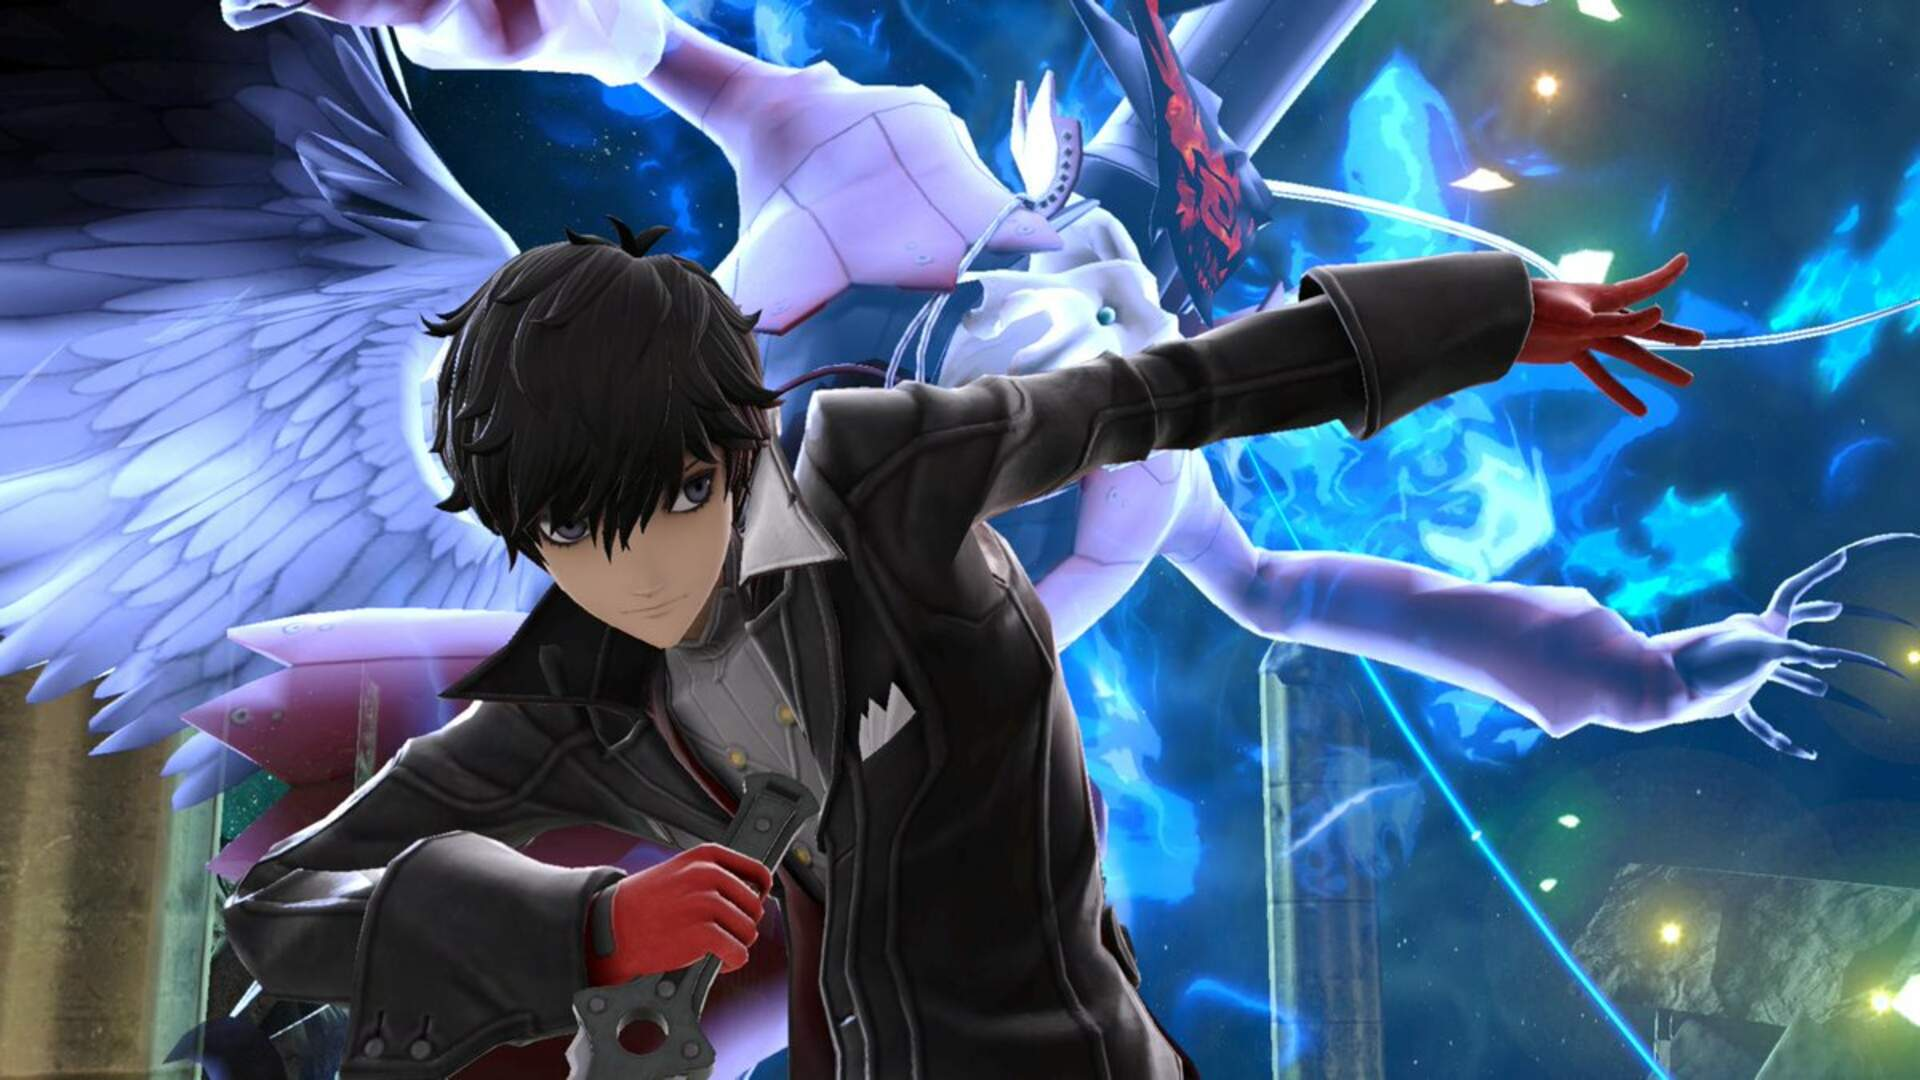 Joker From Persona 5 Steals Hearts in Super Smash Bros. Ultimate Tomorrow Along With a Big 3.0 Update